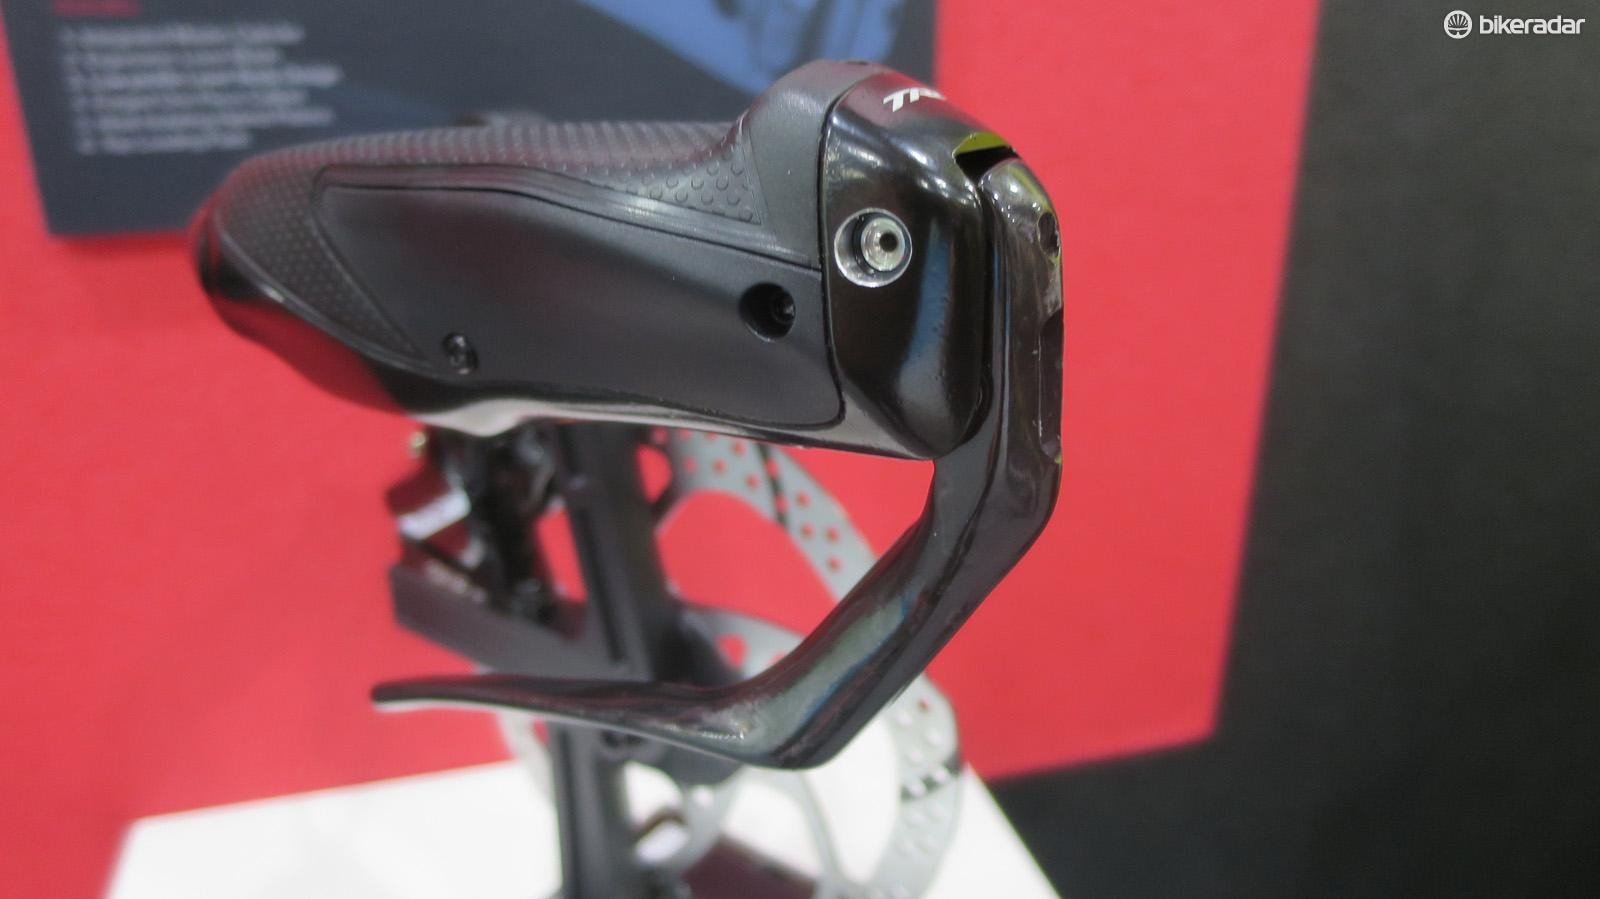 The lever is ergo-shaped and the soft-touch textured grip hides the master cyclinder underneath its rubber